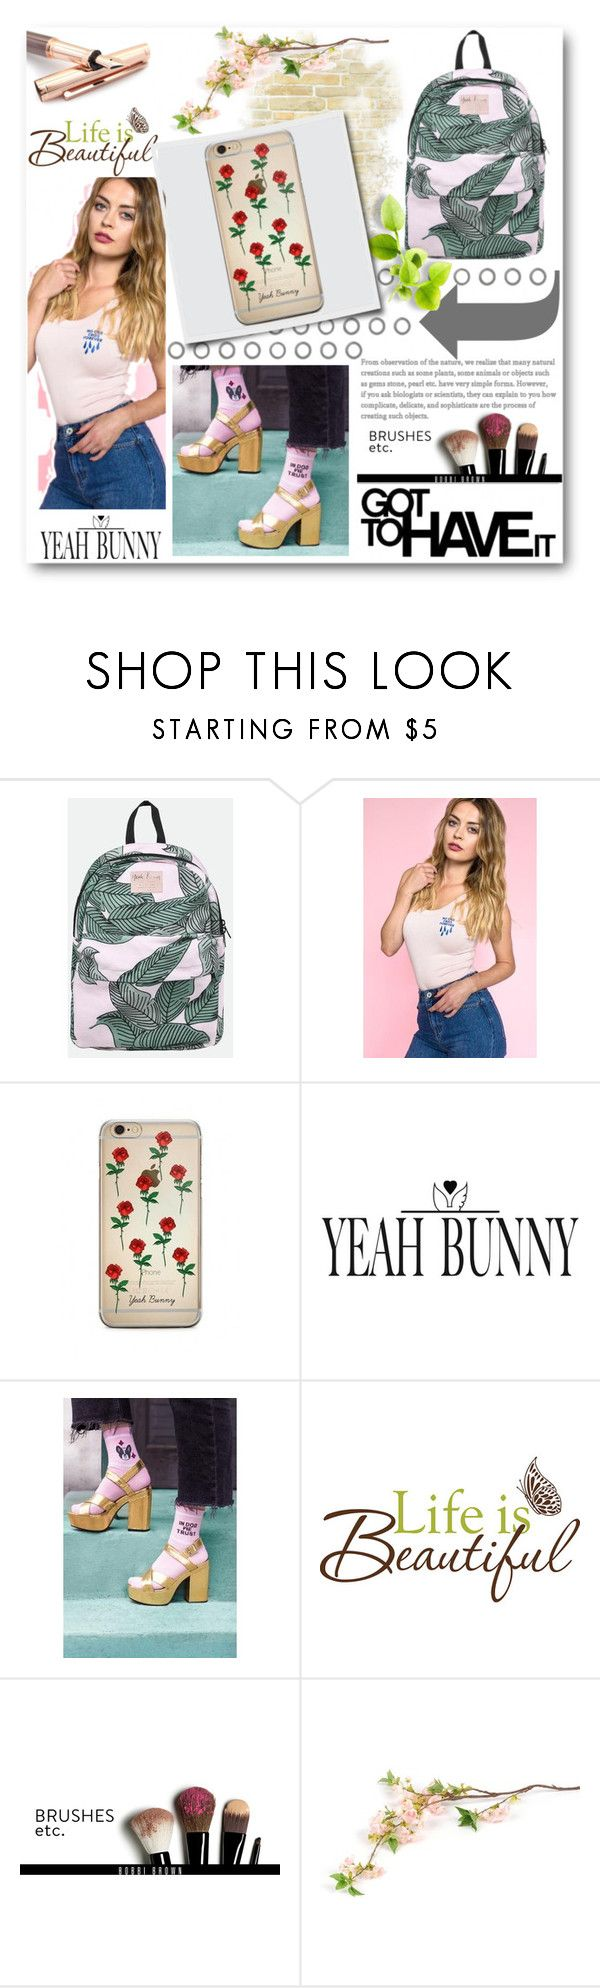 """YEAH BUNNY contest with prize!-90$ gift coupon"" by luisa-lisa ❤ liked on Polyvore featuring Yeah Bunny, Wall Pops!, Fountain and Bobbi Brown Cosmetics"